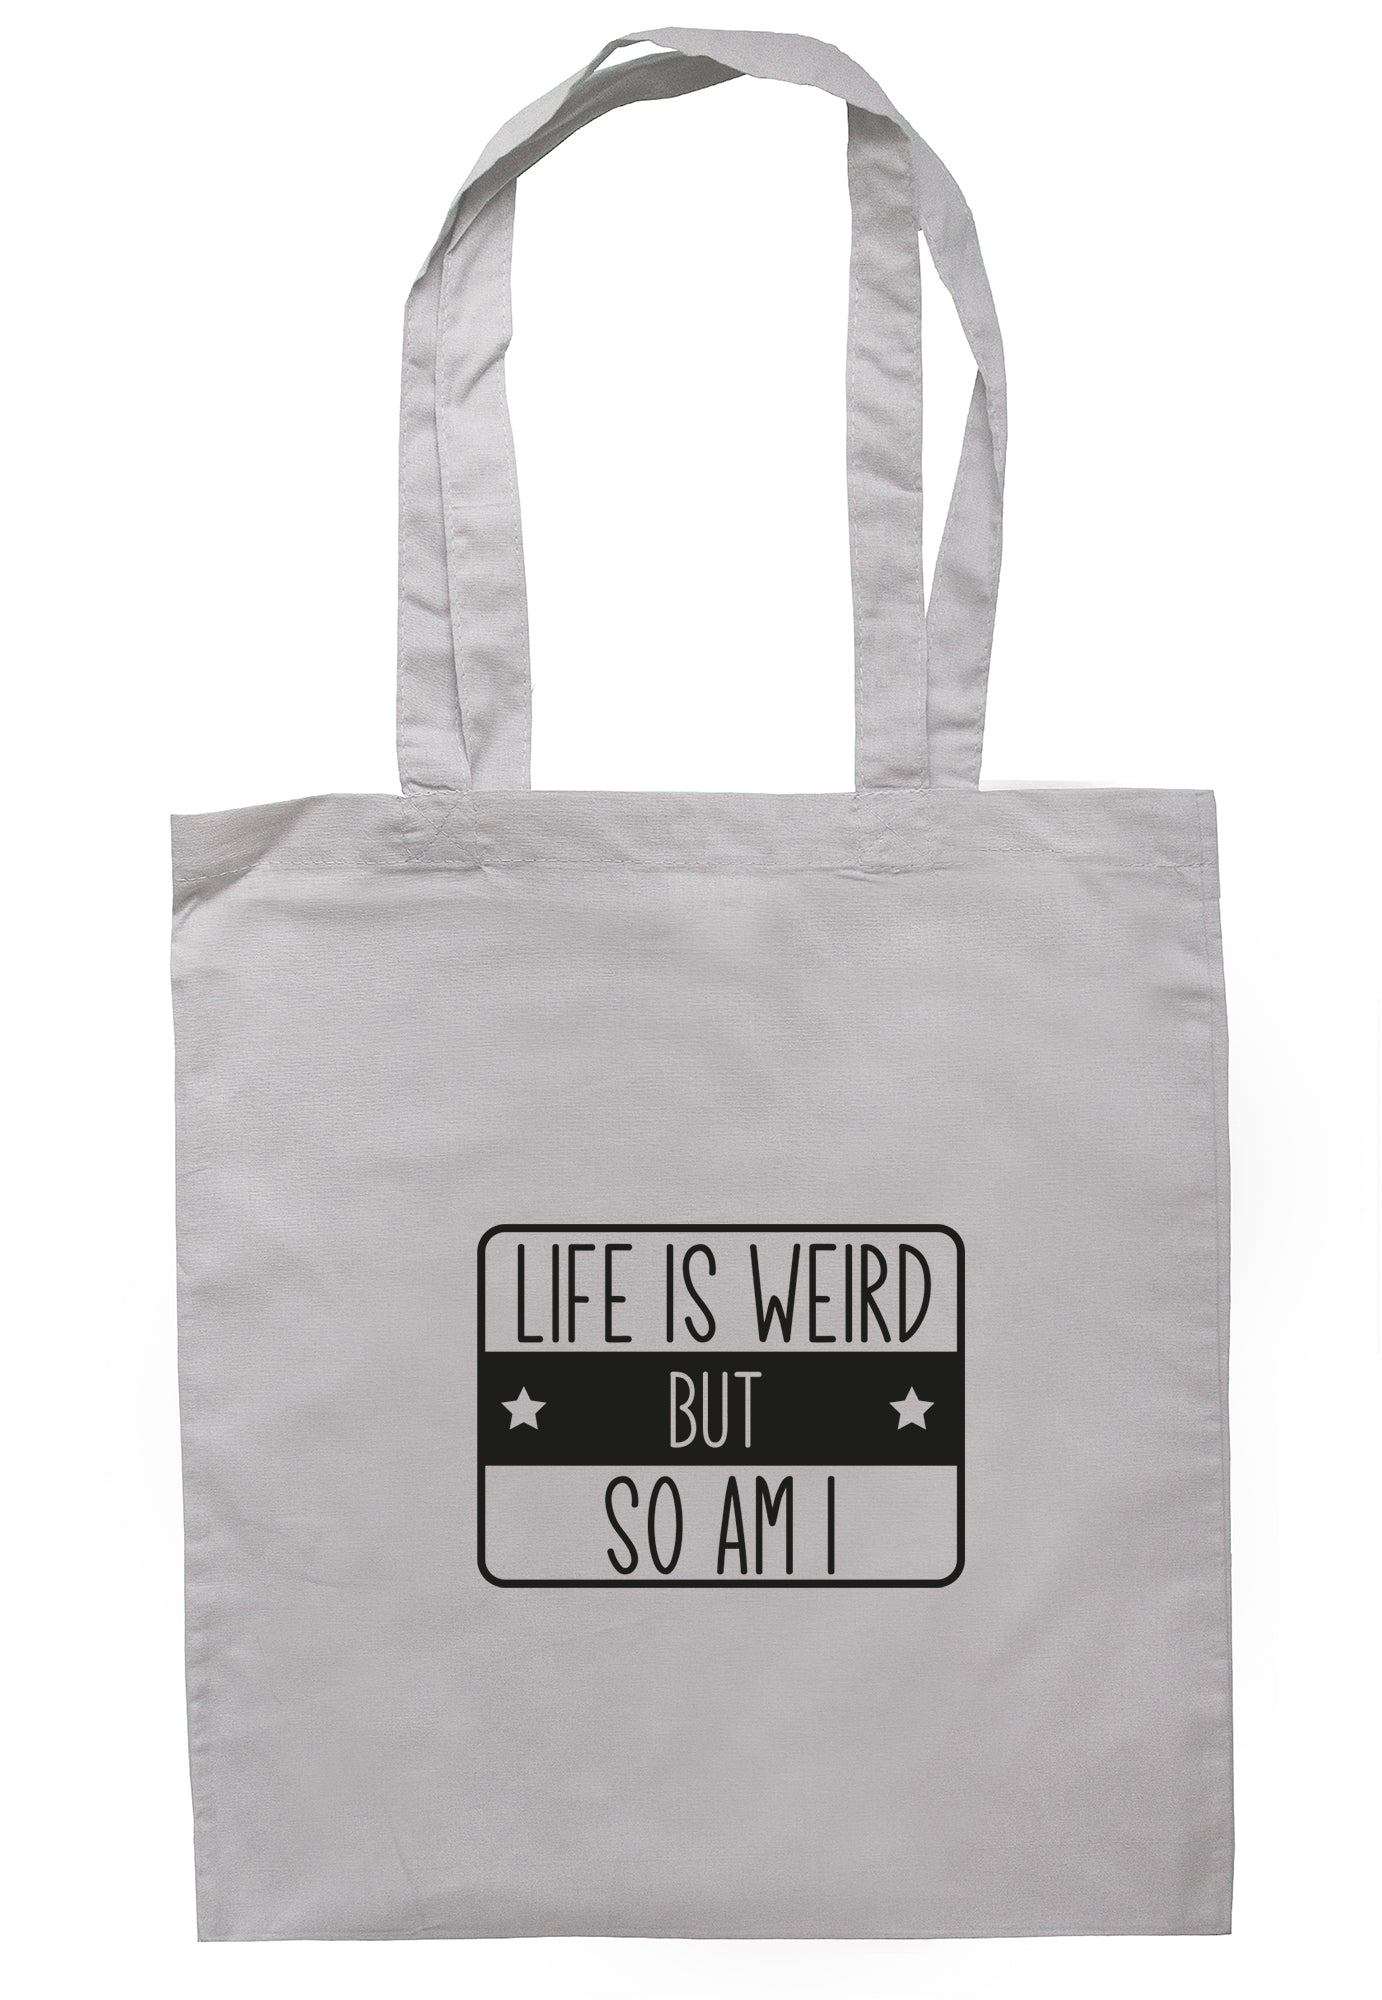 Life Is Weird But So Am I Tote Bag S1148 - Illustrated Identity Ltd.